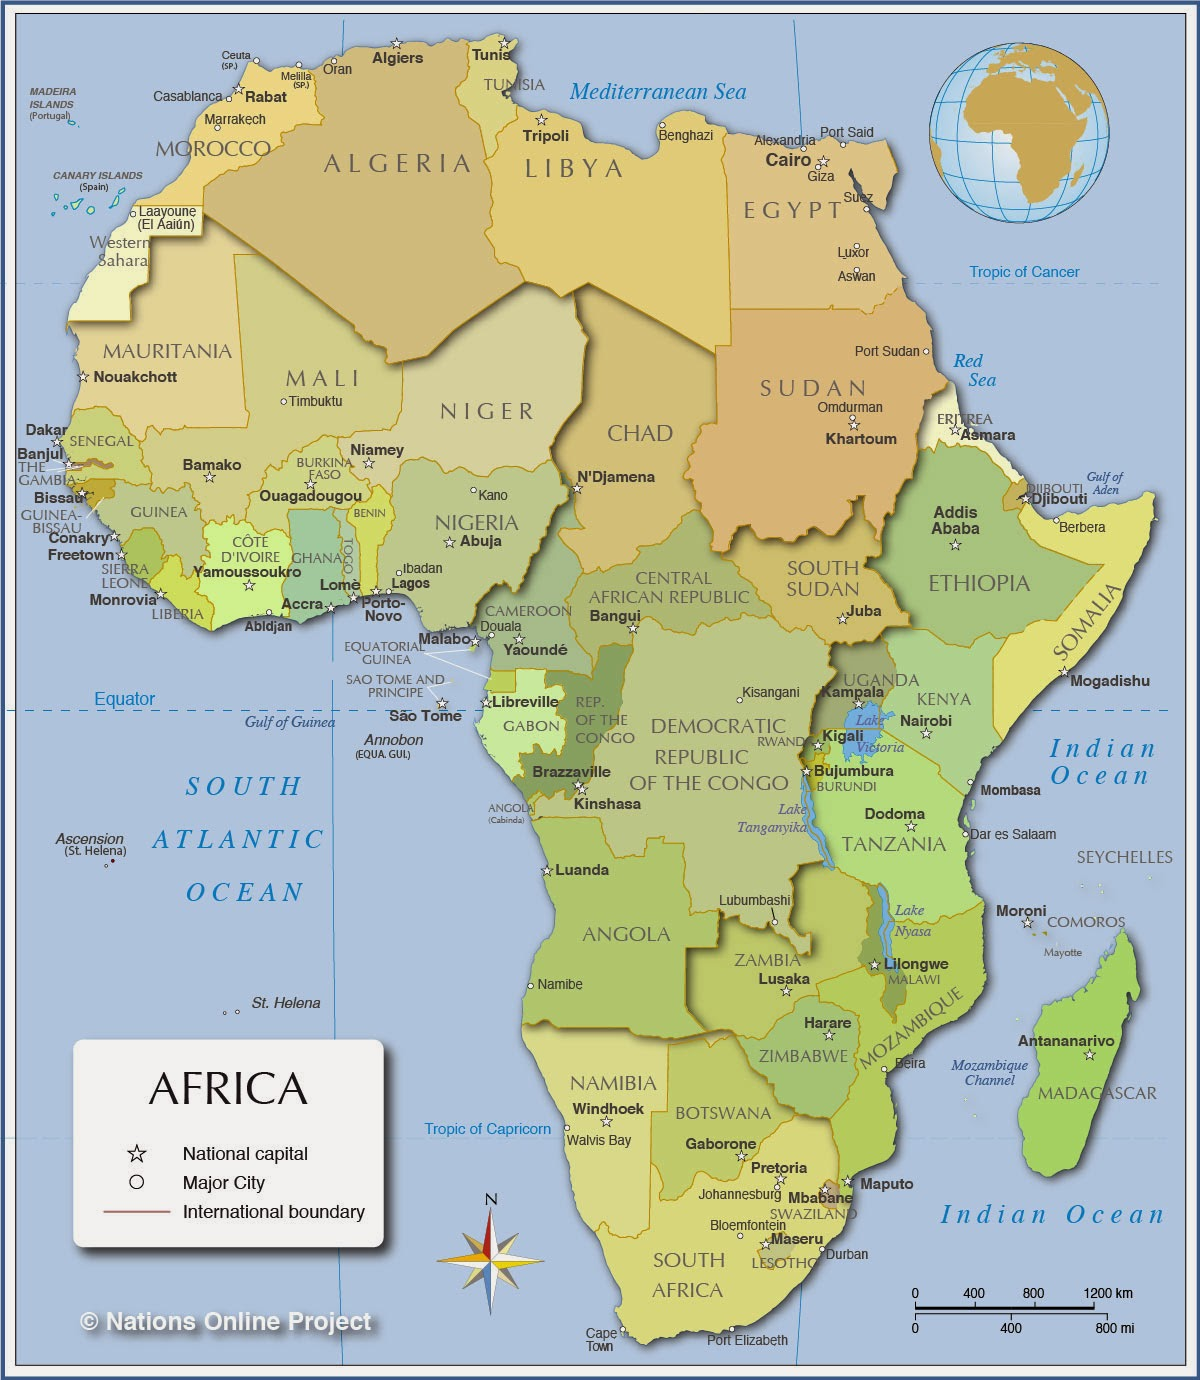 There Are 3 Countries In Africa That Have 4 Letters In